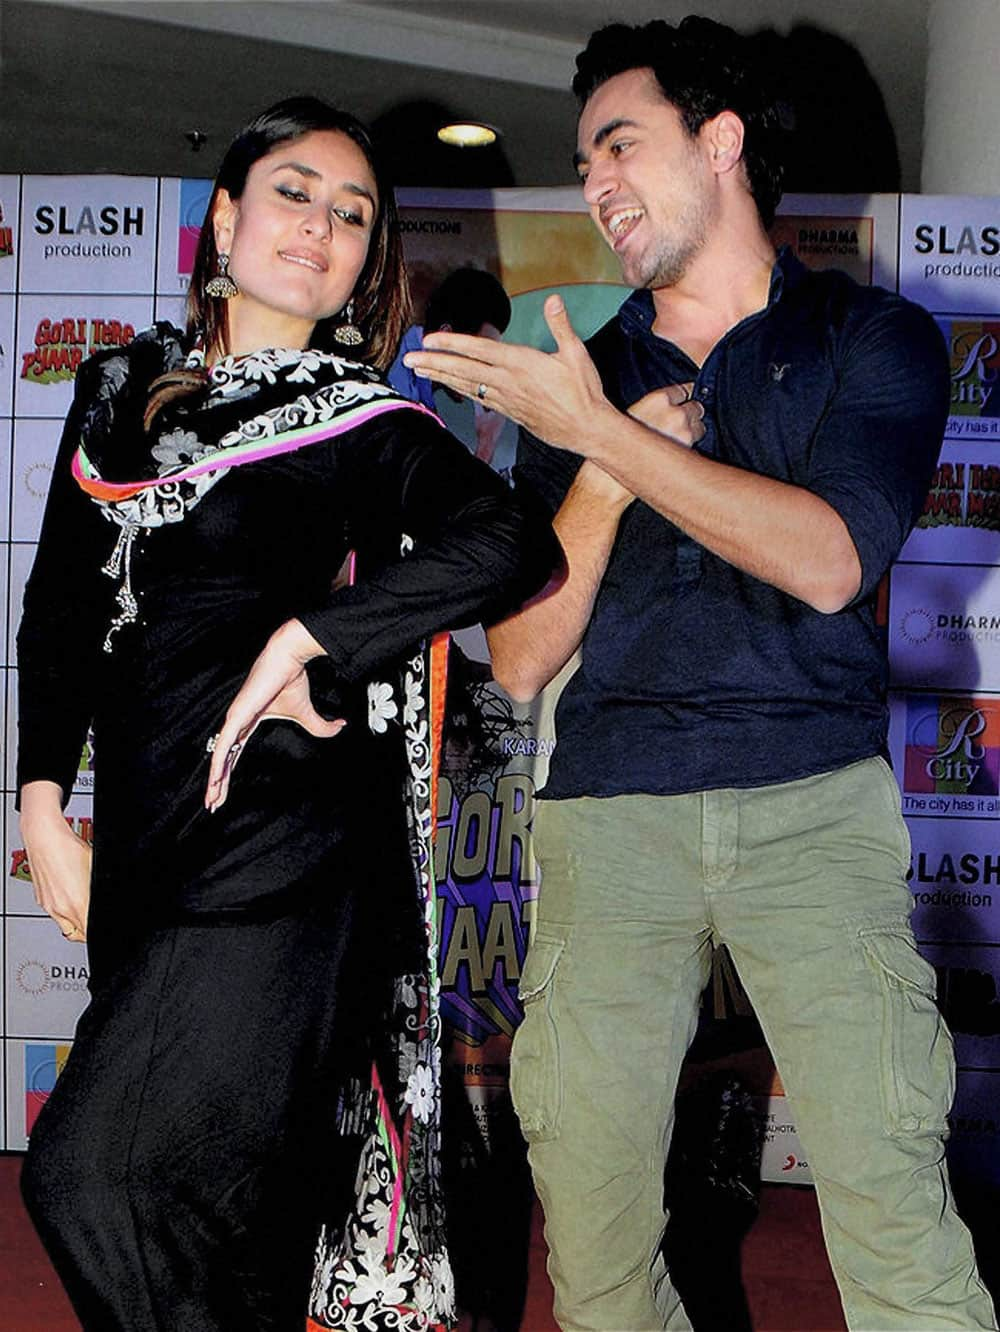 Bollywood actors Kareena Kapoor and Imran Khan dance during the promotion of their upcoming film 'Gori Tere Pyar Mein'.